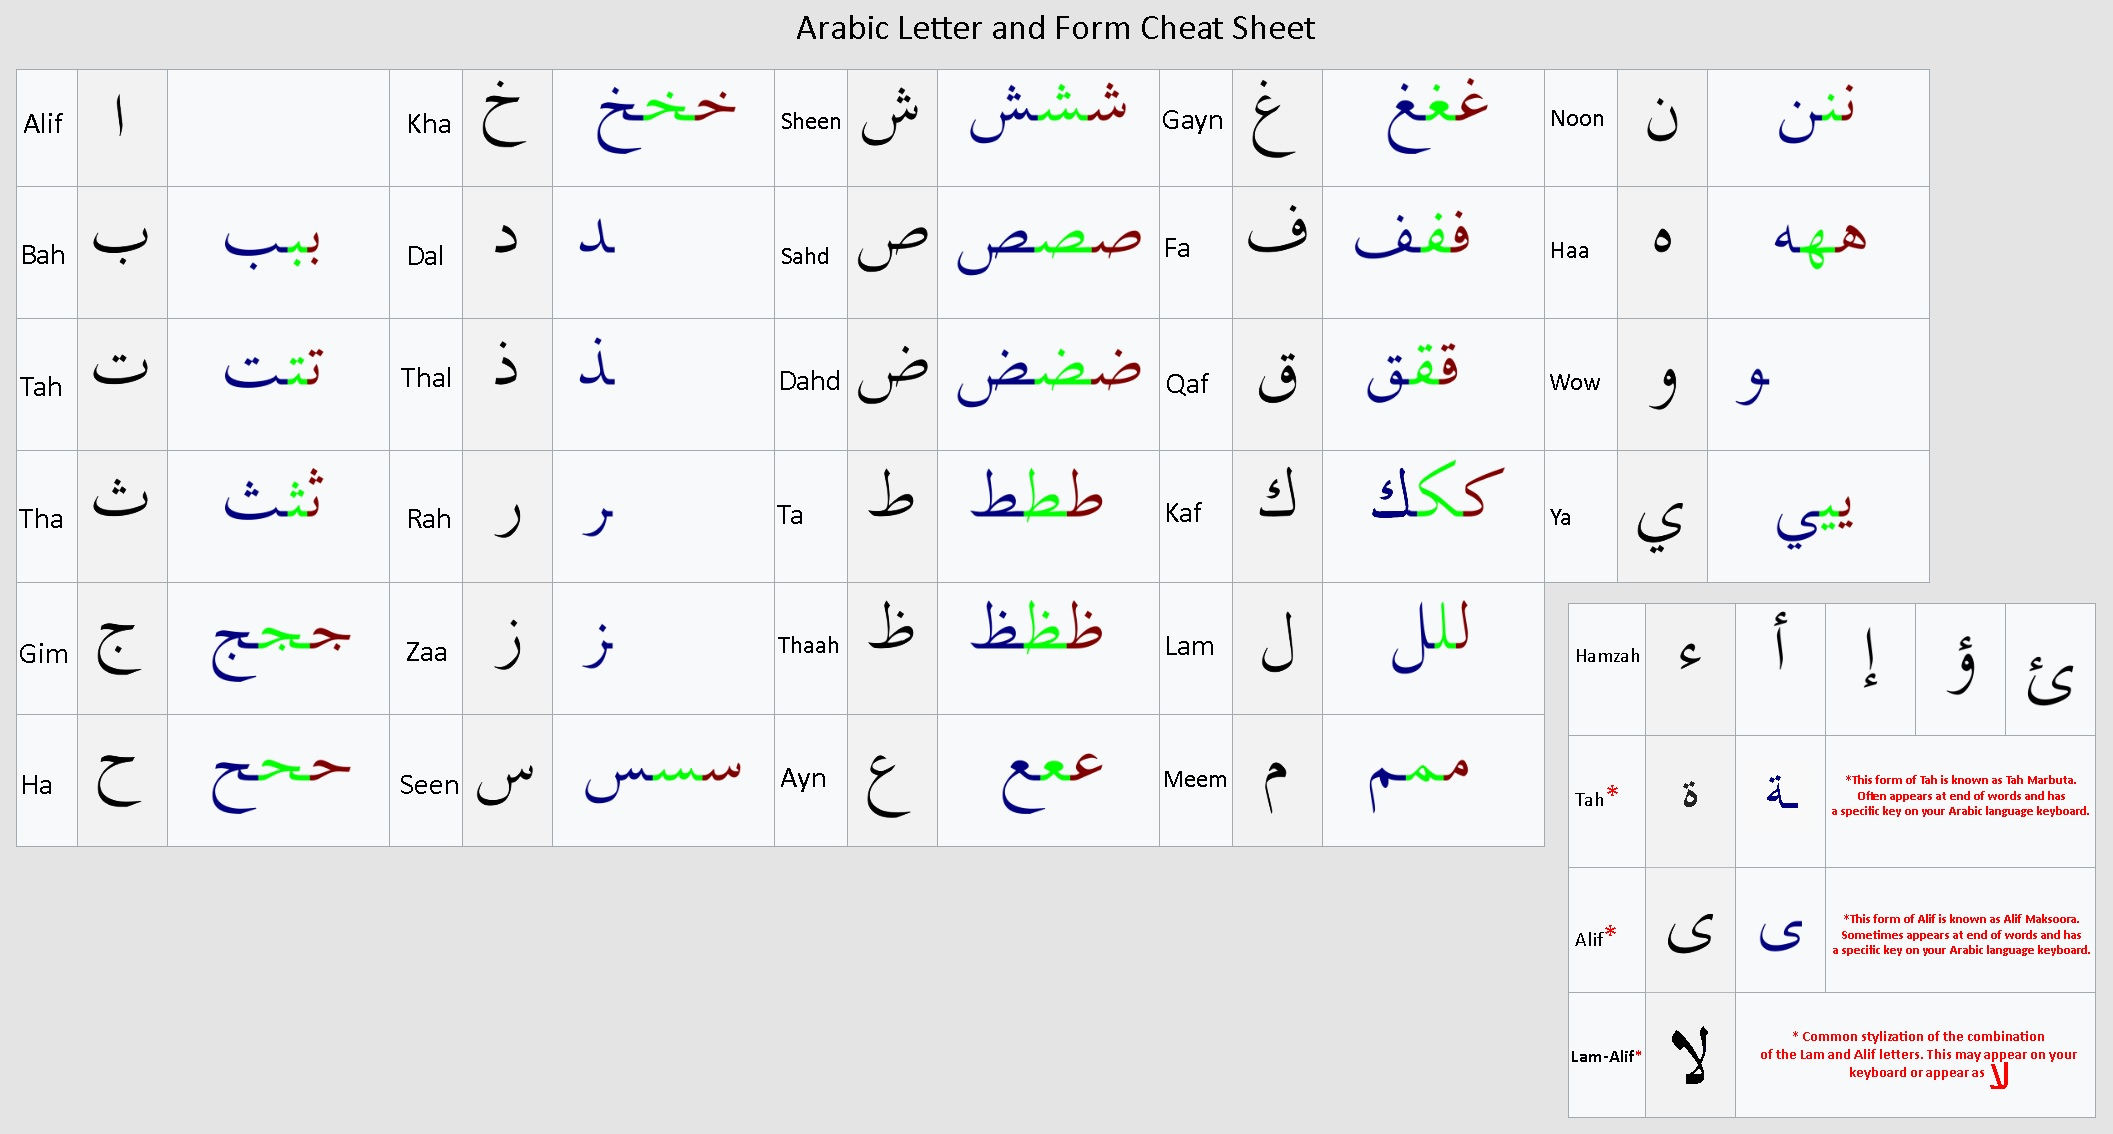 Arabic Cheat Sheet